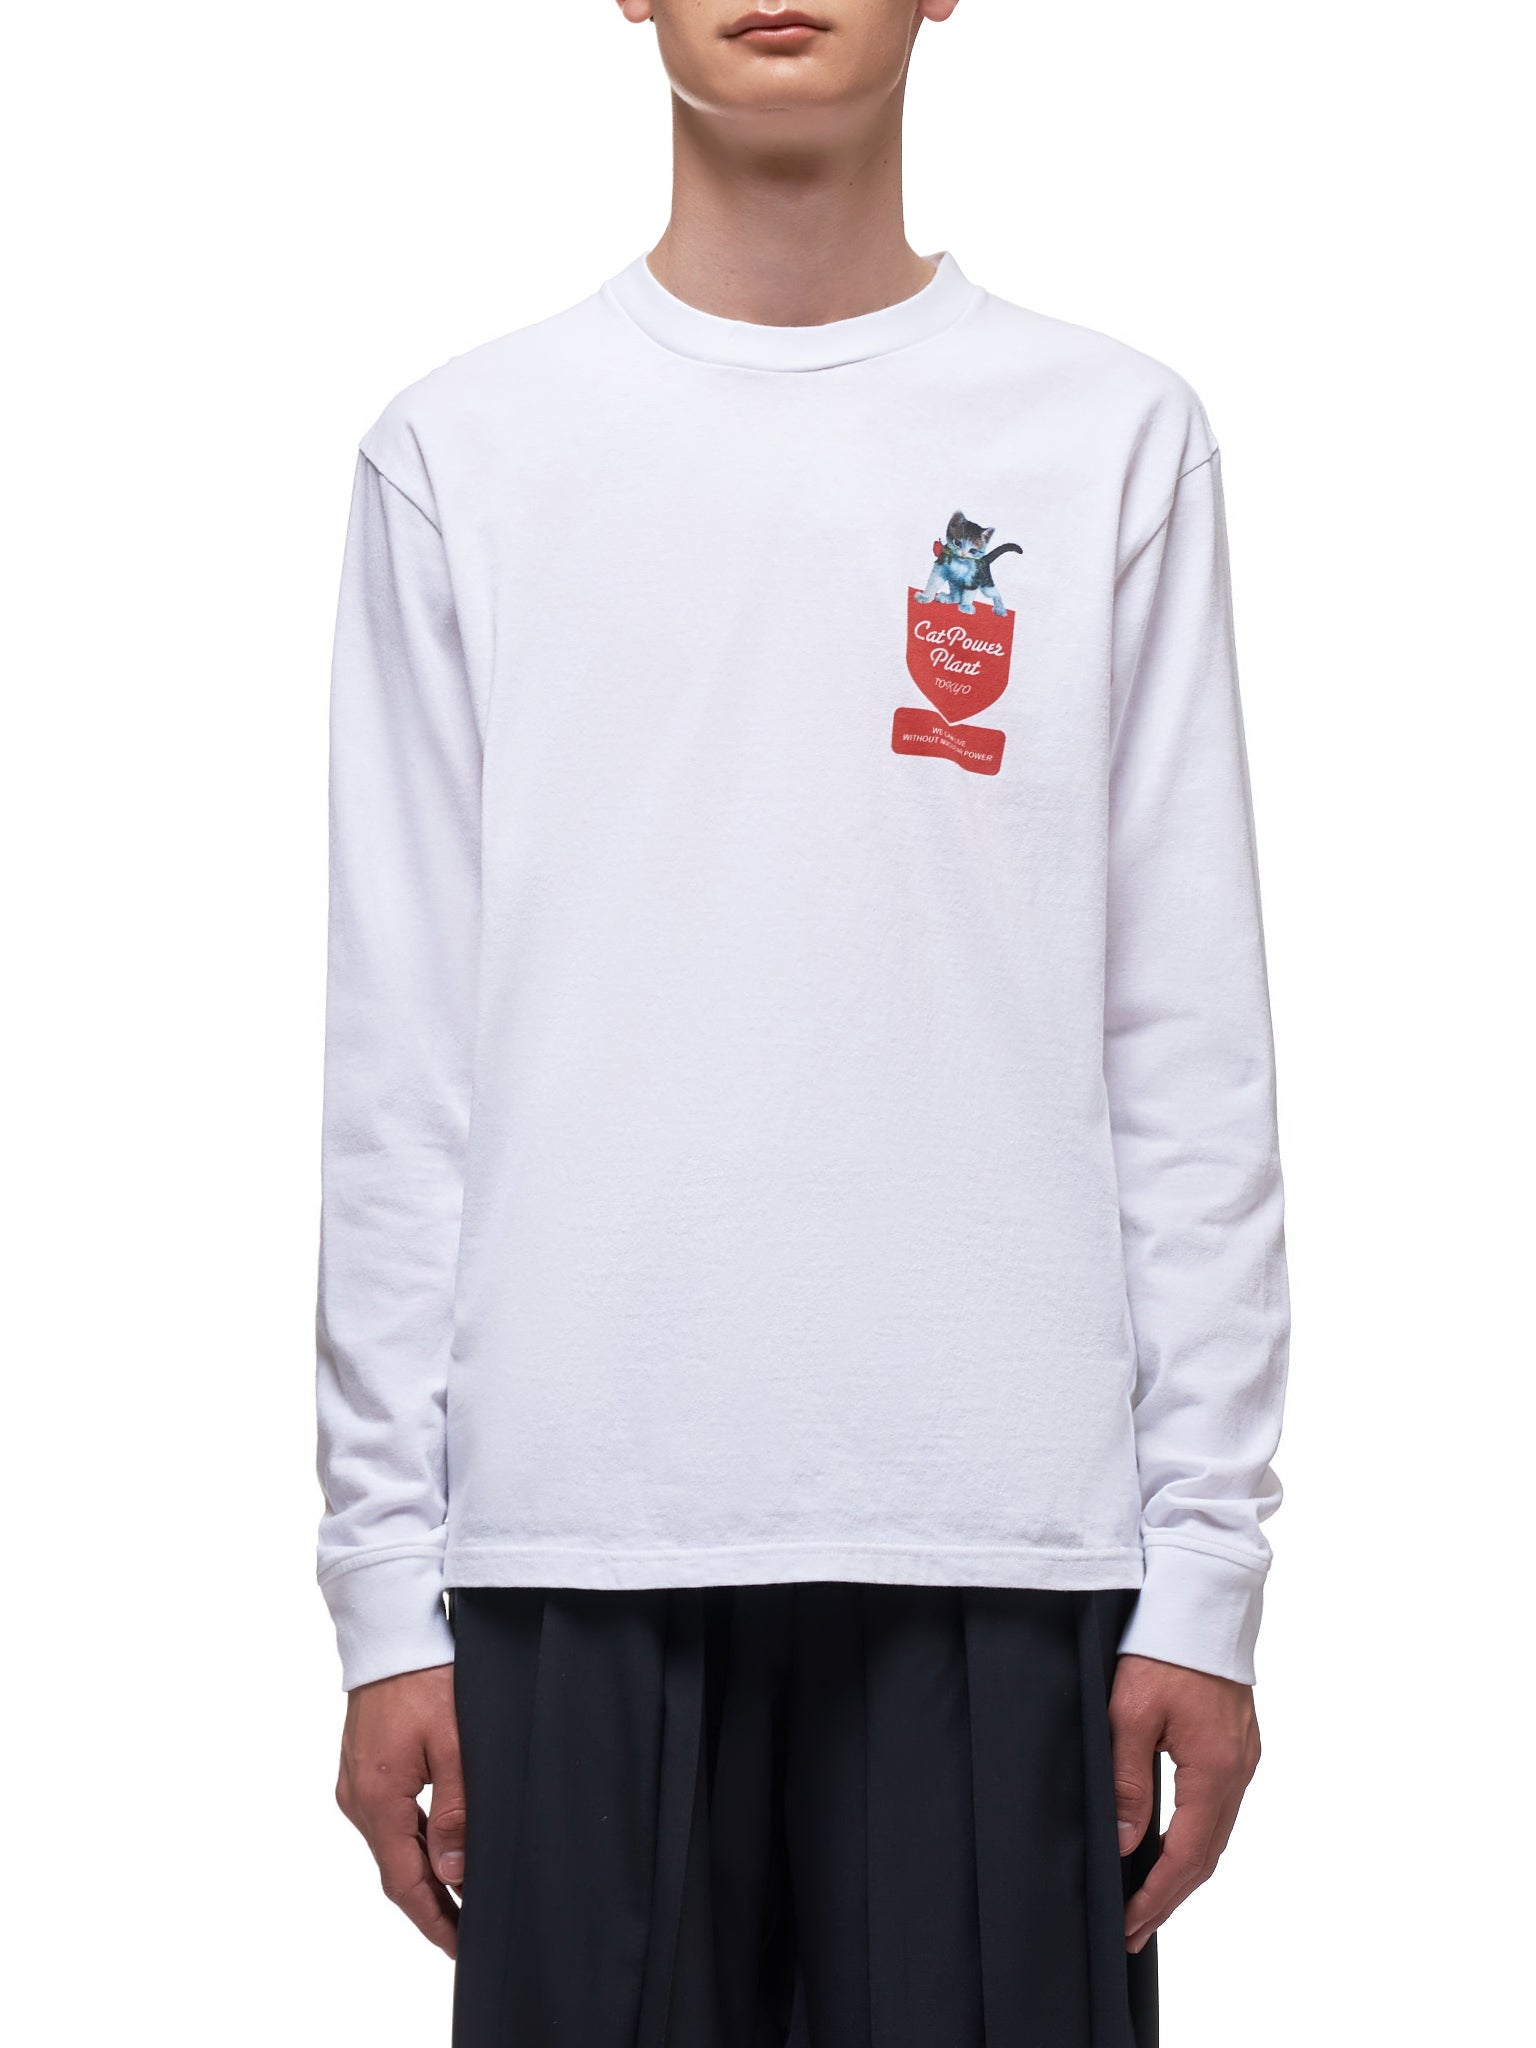 Cat Power Graphic Long Sleeve (UCY4892-3-WHITE)